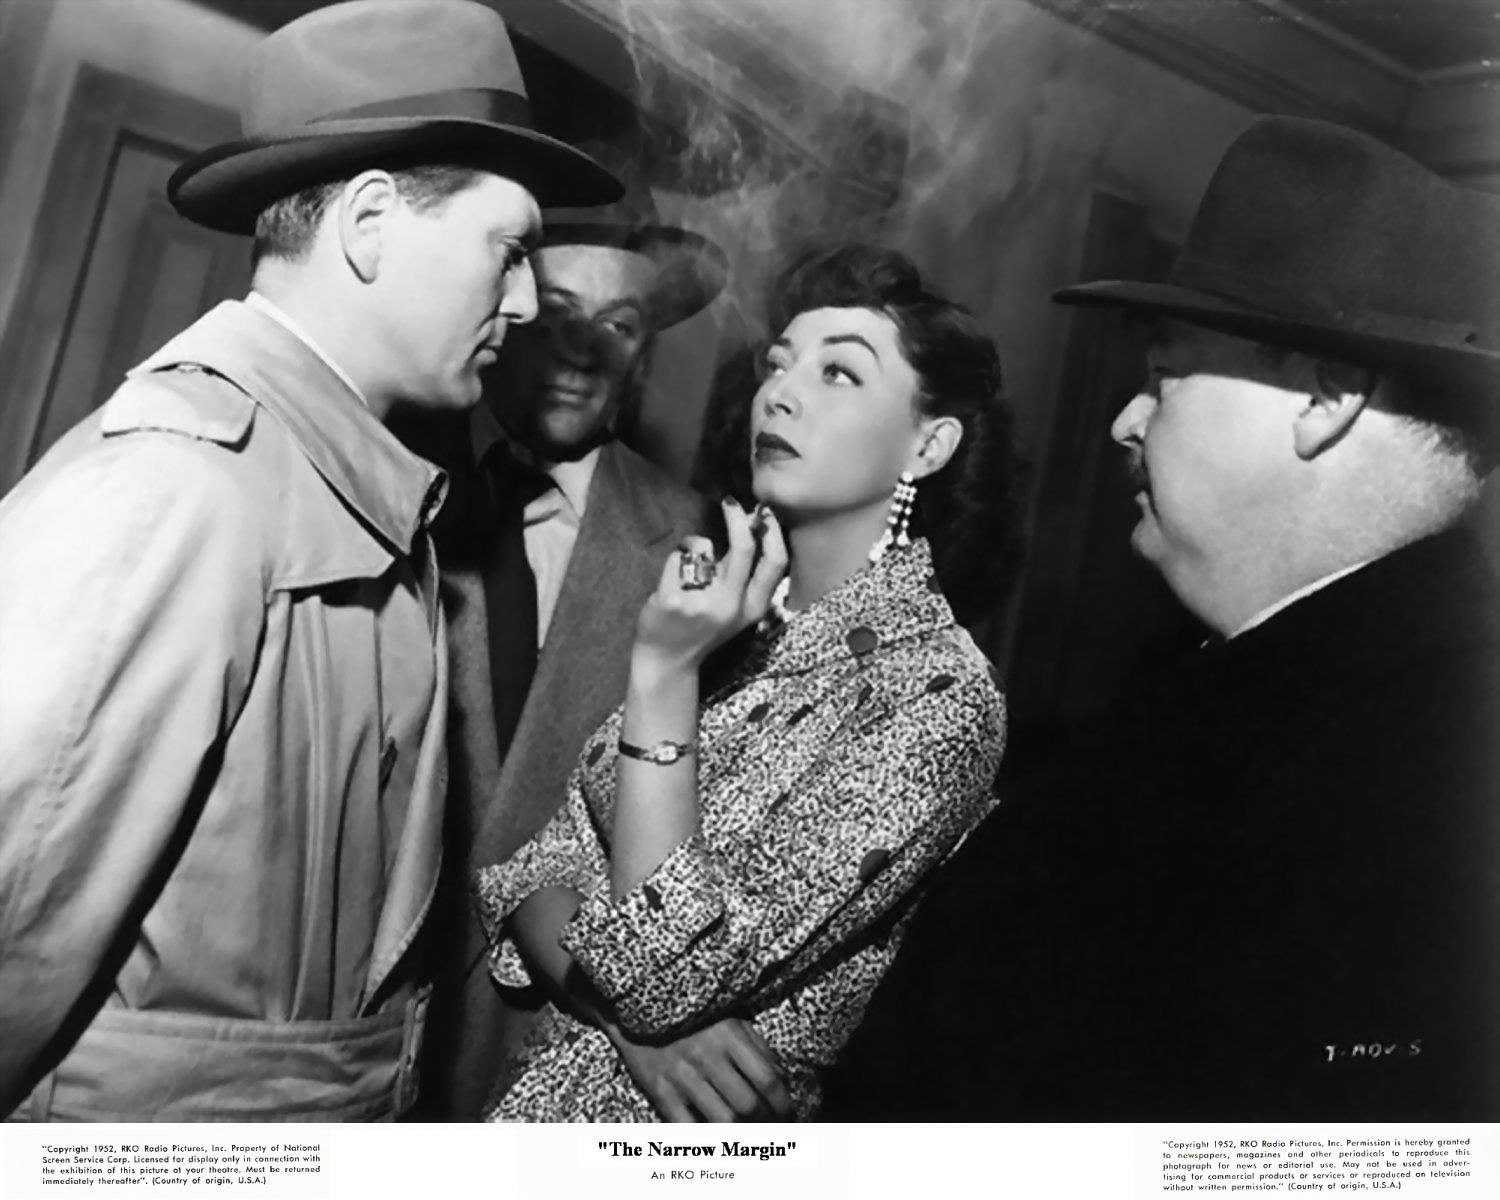 Tough guy Charles McGraw confronts the unflappable Marie Windsor.